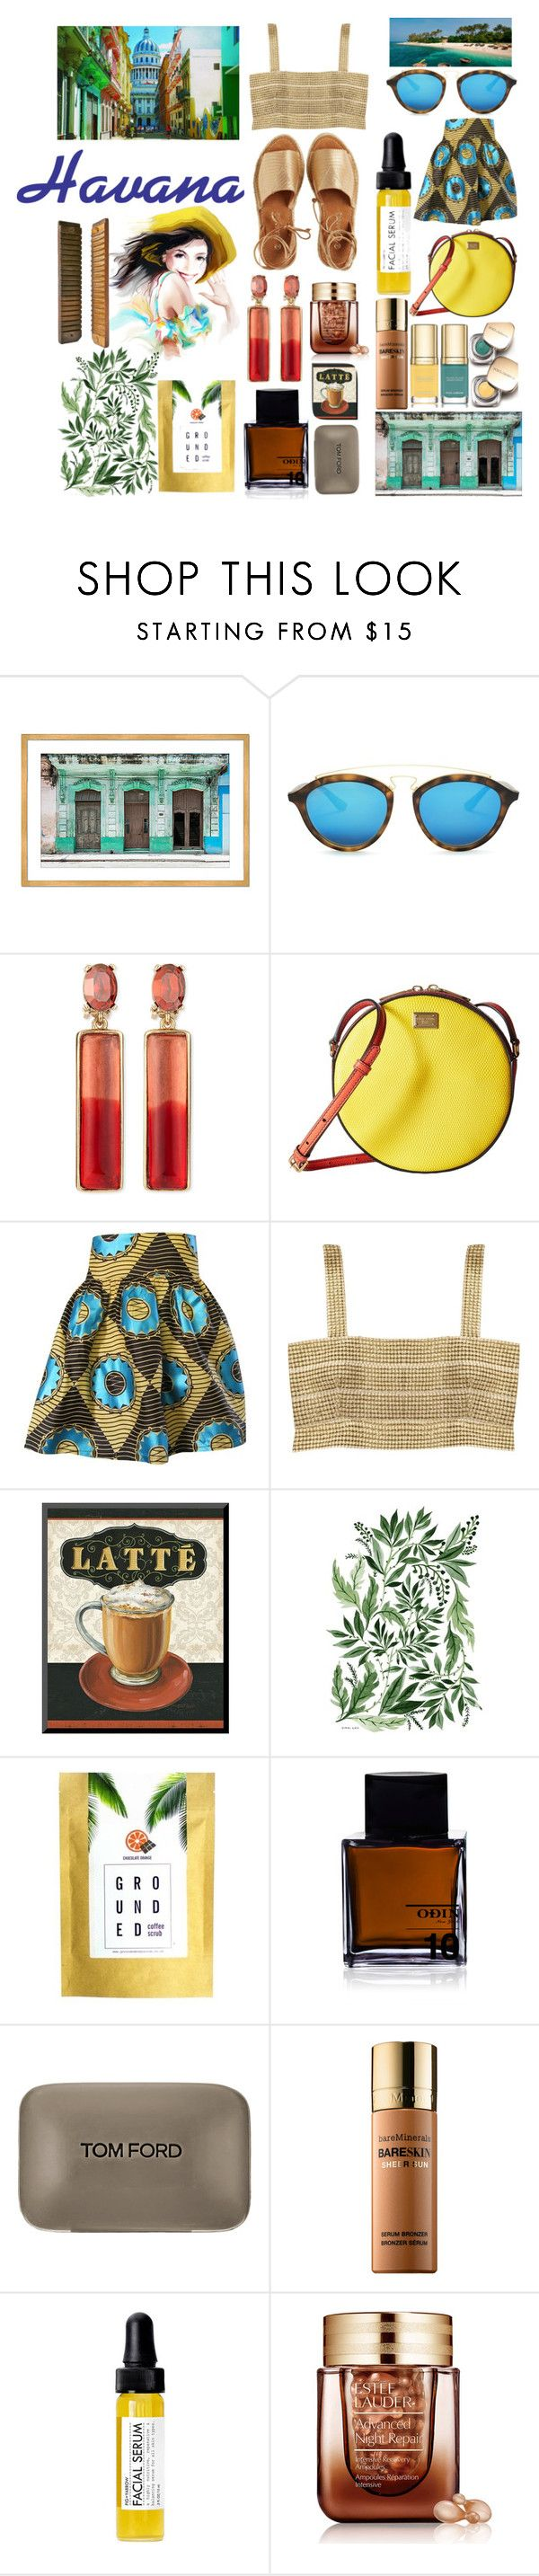 """Vista: Havana"" by chichihayari ❤ liked on Polyvore featuring Ray-Ban, Dolce&Gabbana, Oscar de la Renta, Aziina, Kaanas, Odin, Tom Ford, Bare Escentuals, Fig+Yarrow and Estée Lauder"